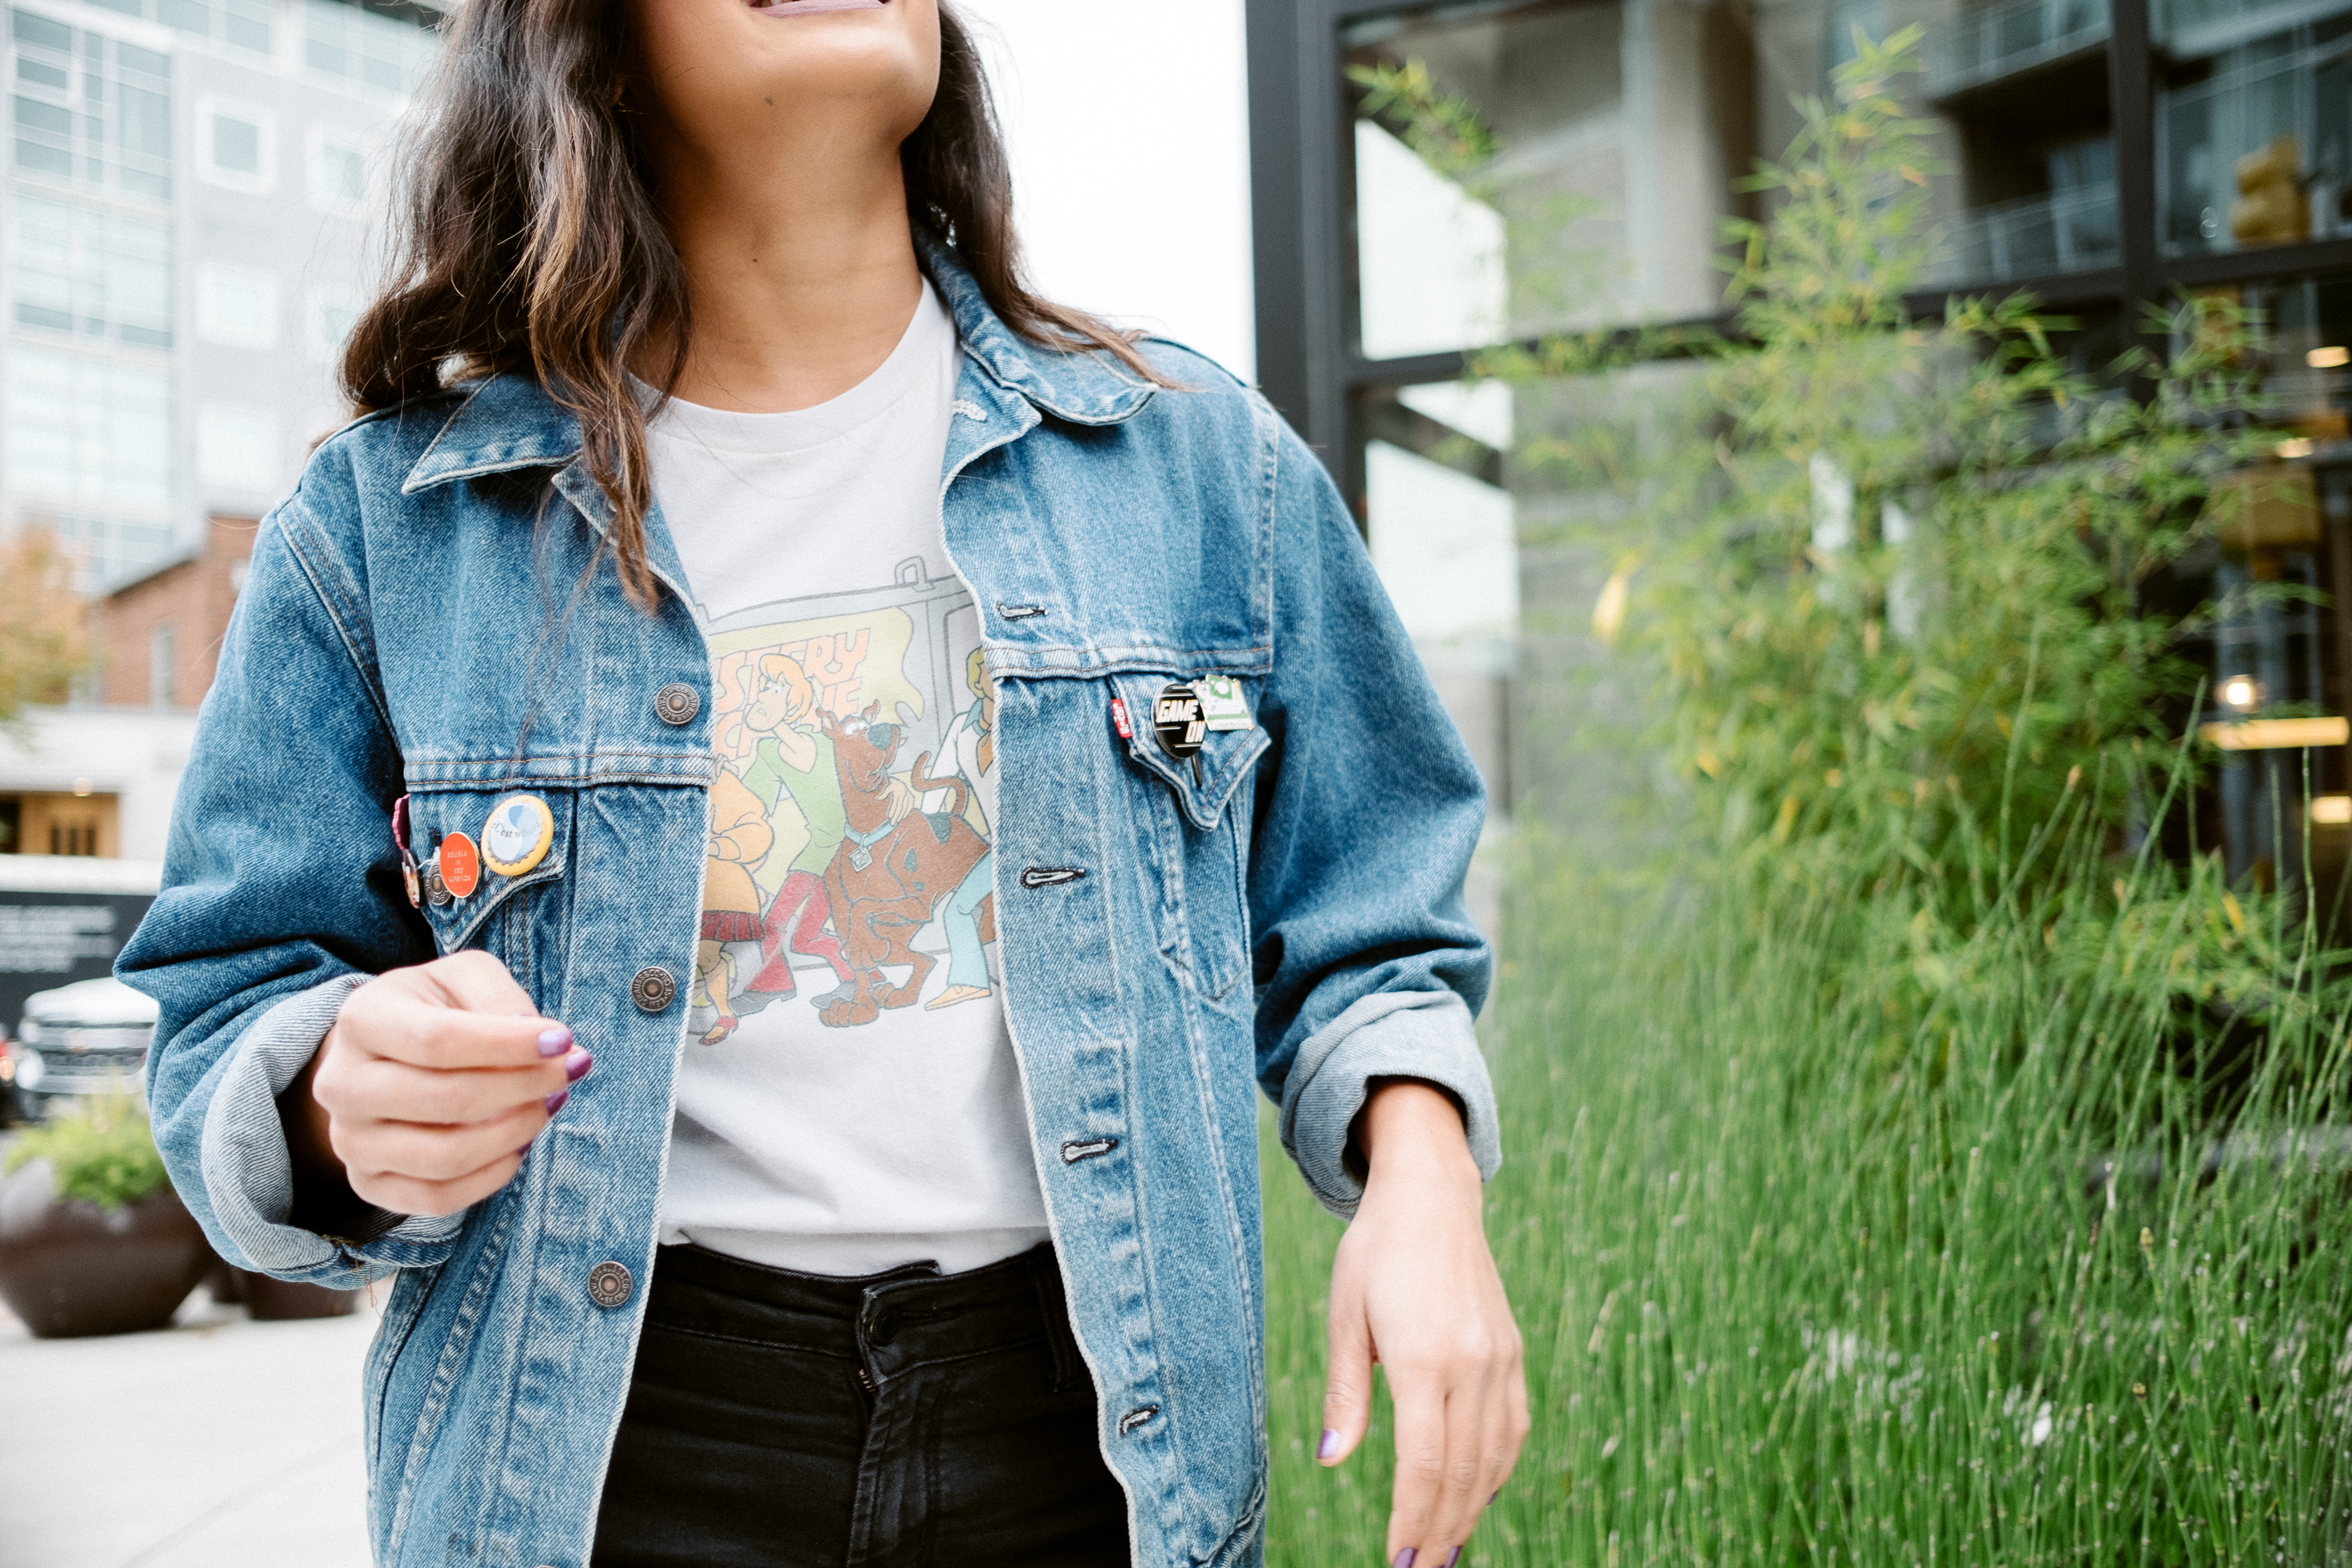 Priya the Blog, Nashville style blog, Scooby Doo graphic t-shirt, vintage denim jacket, moody Fall outfit, graphic tee